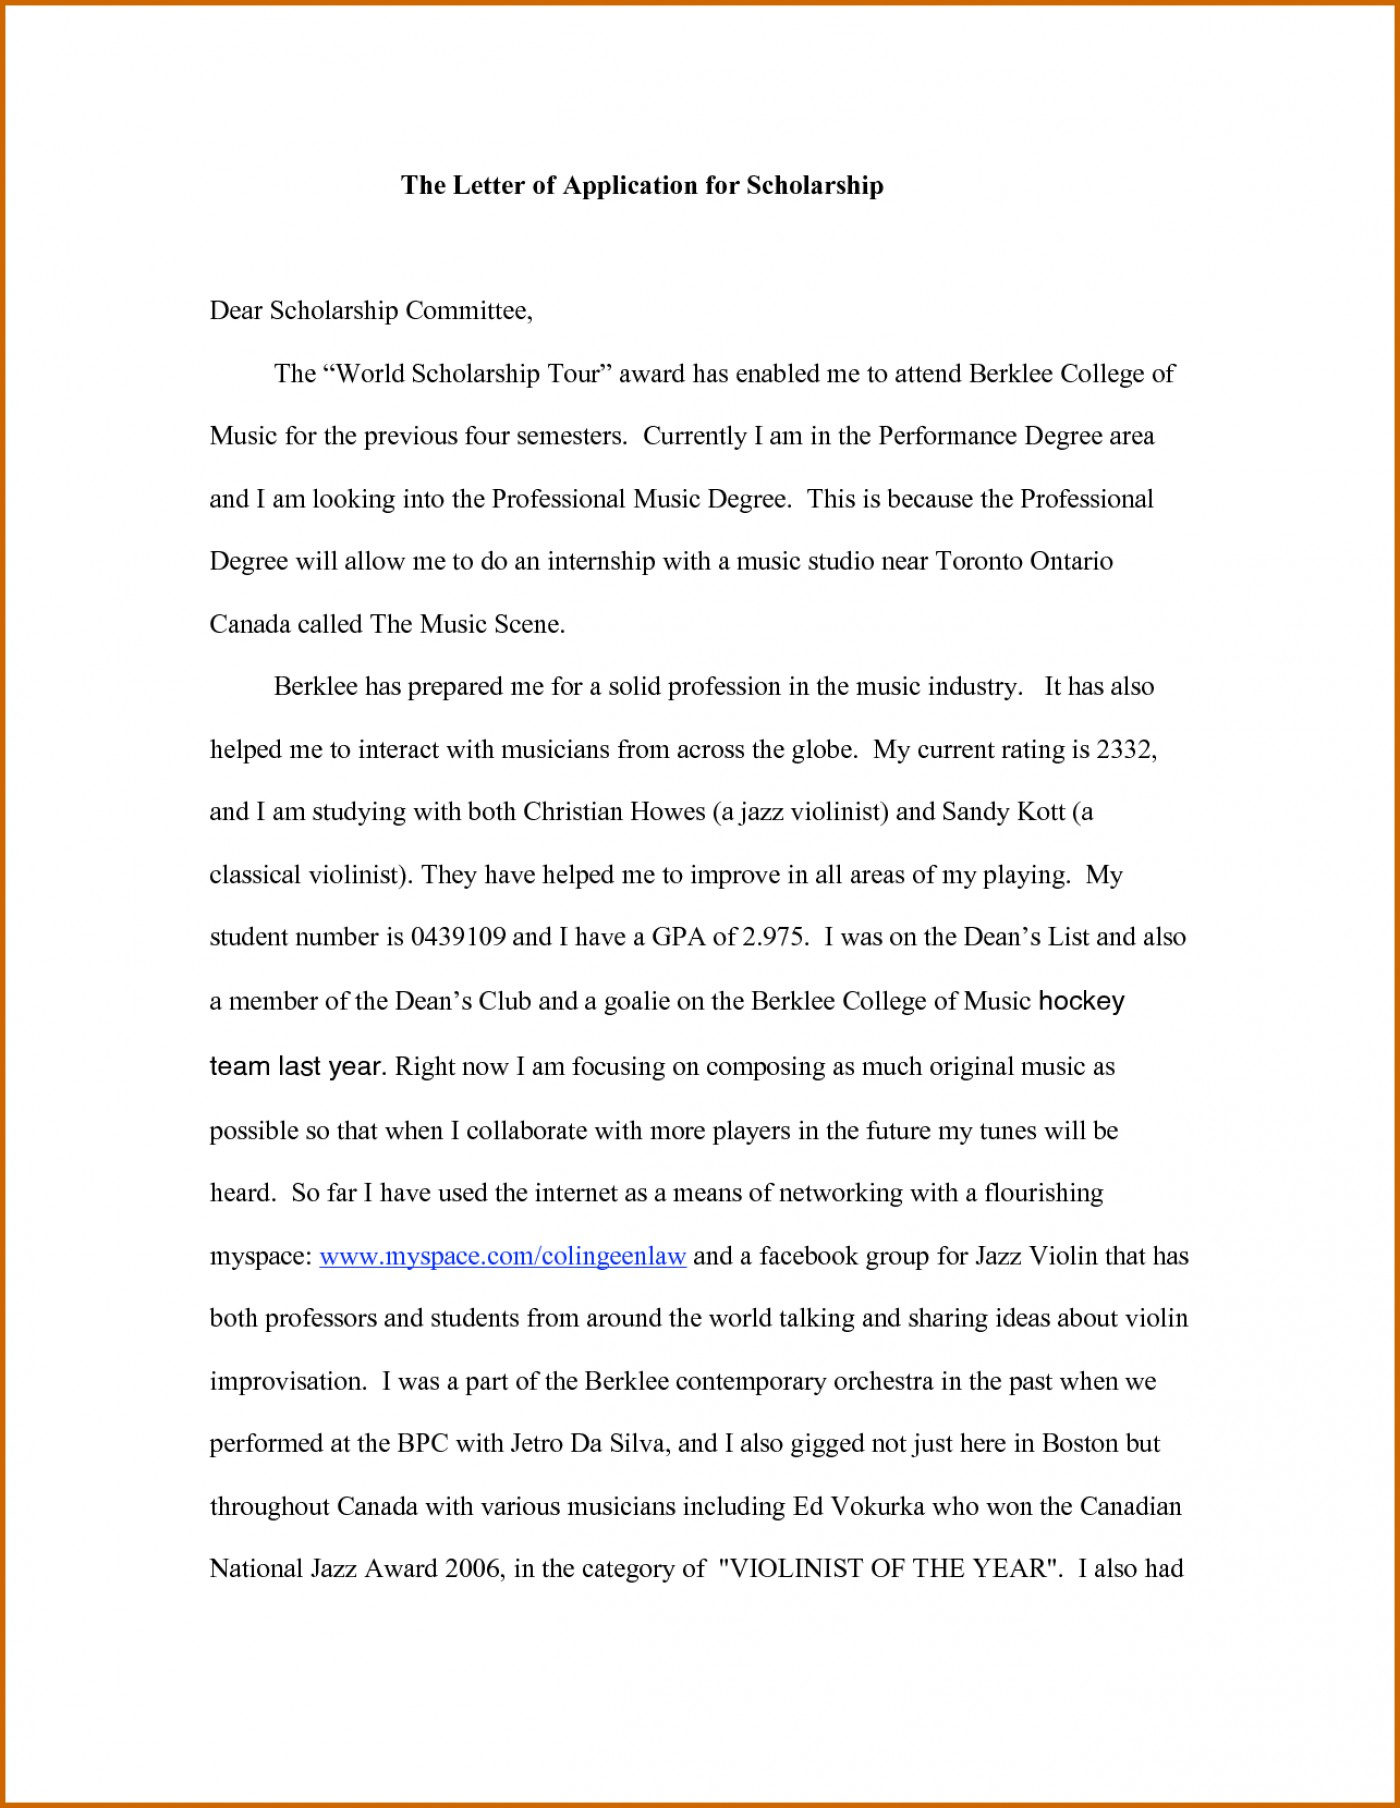 009 Essay Example How To Writepplication For Scholarship What Awesome Write A Introduction That Stands Out About Your Career Goals 1400